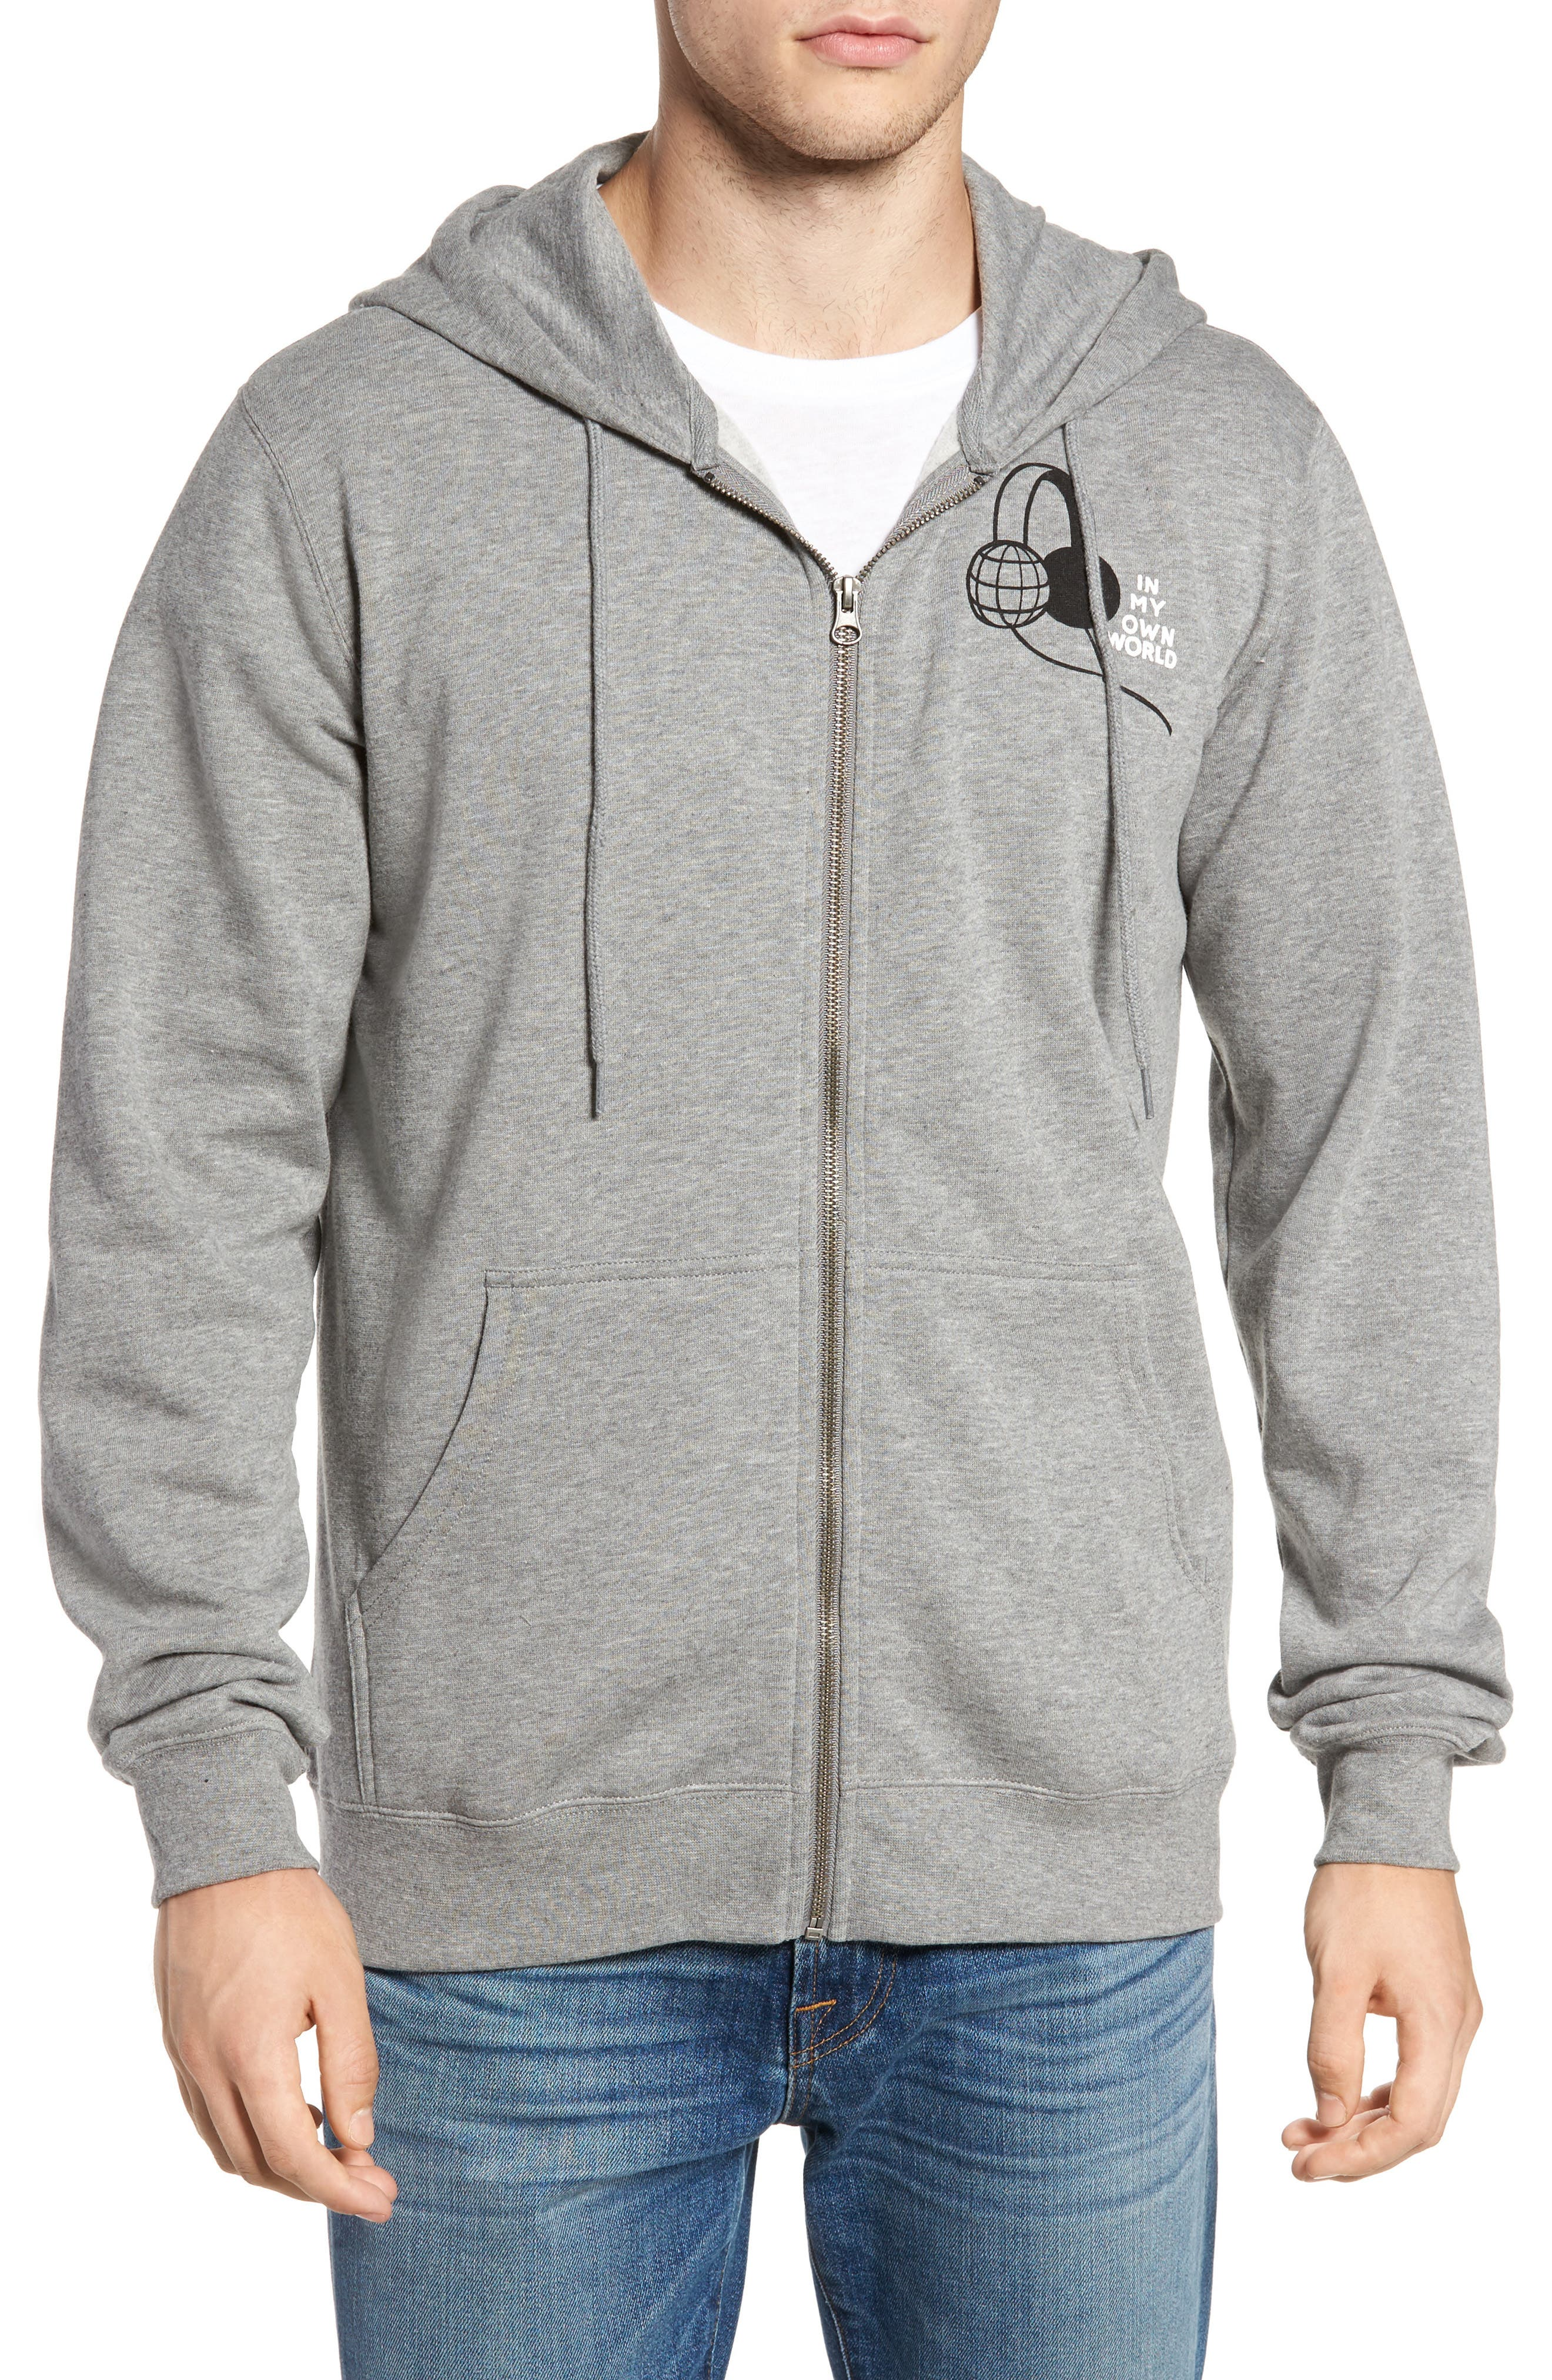 In My Own World Zip Hoodie,                             Main thumbnail 1, color,